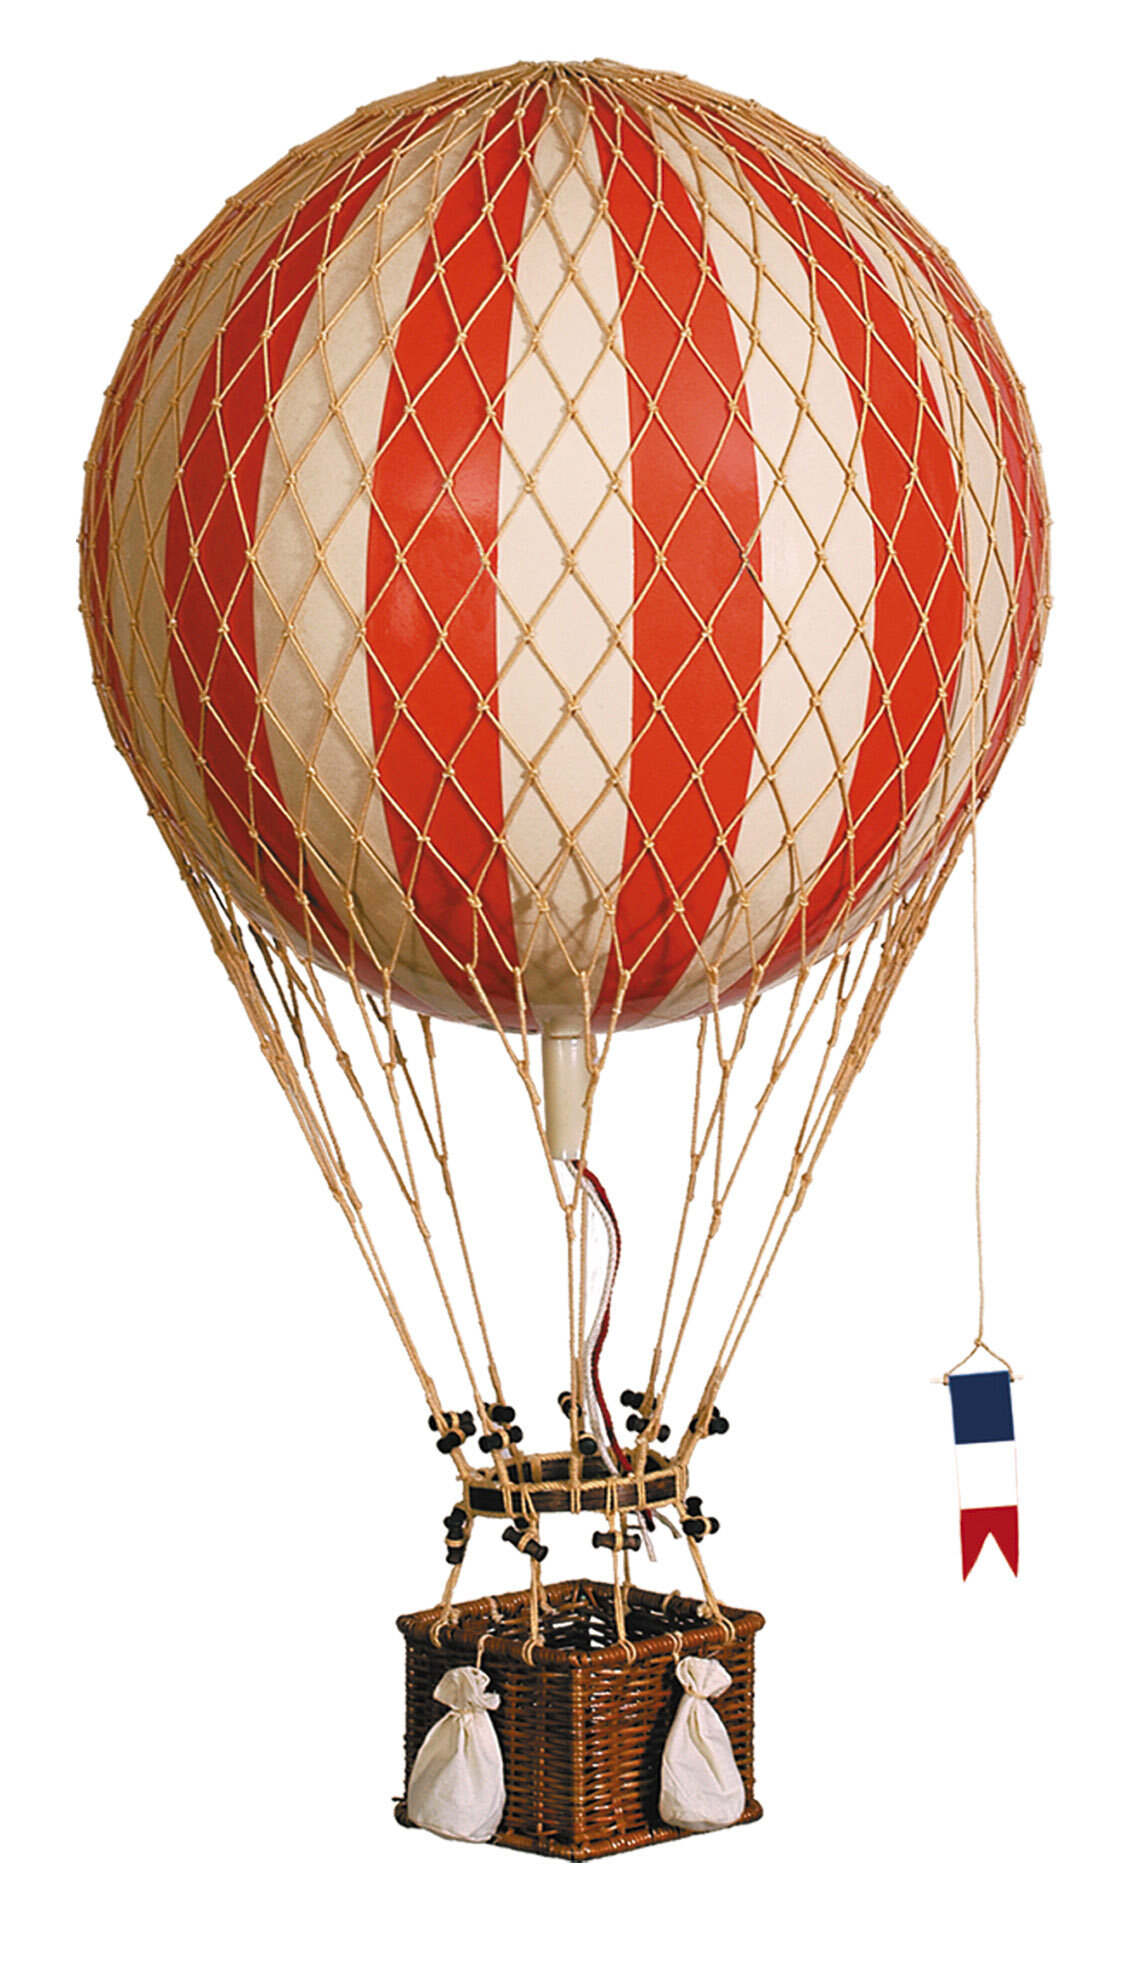 Viv Rae Katherine Aero Model Hot Air Balloon with Hand Knotted